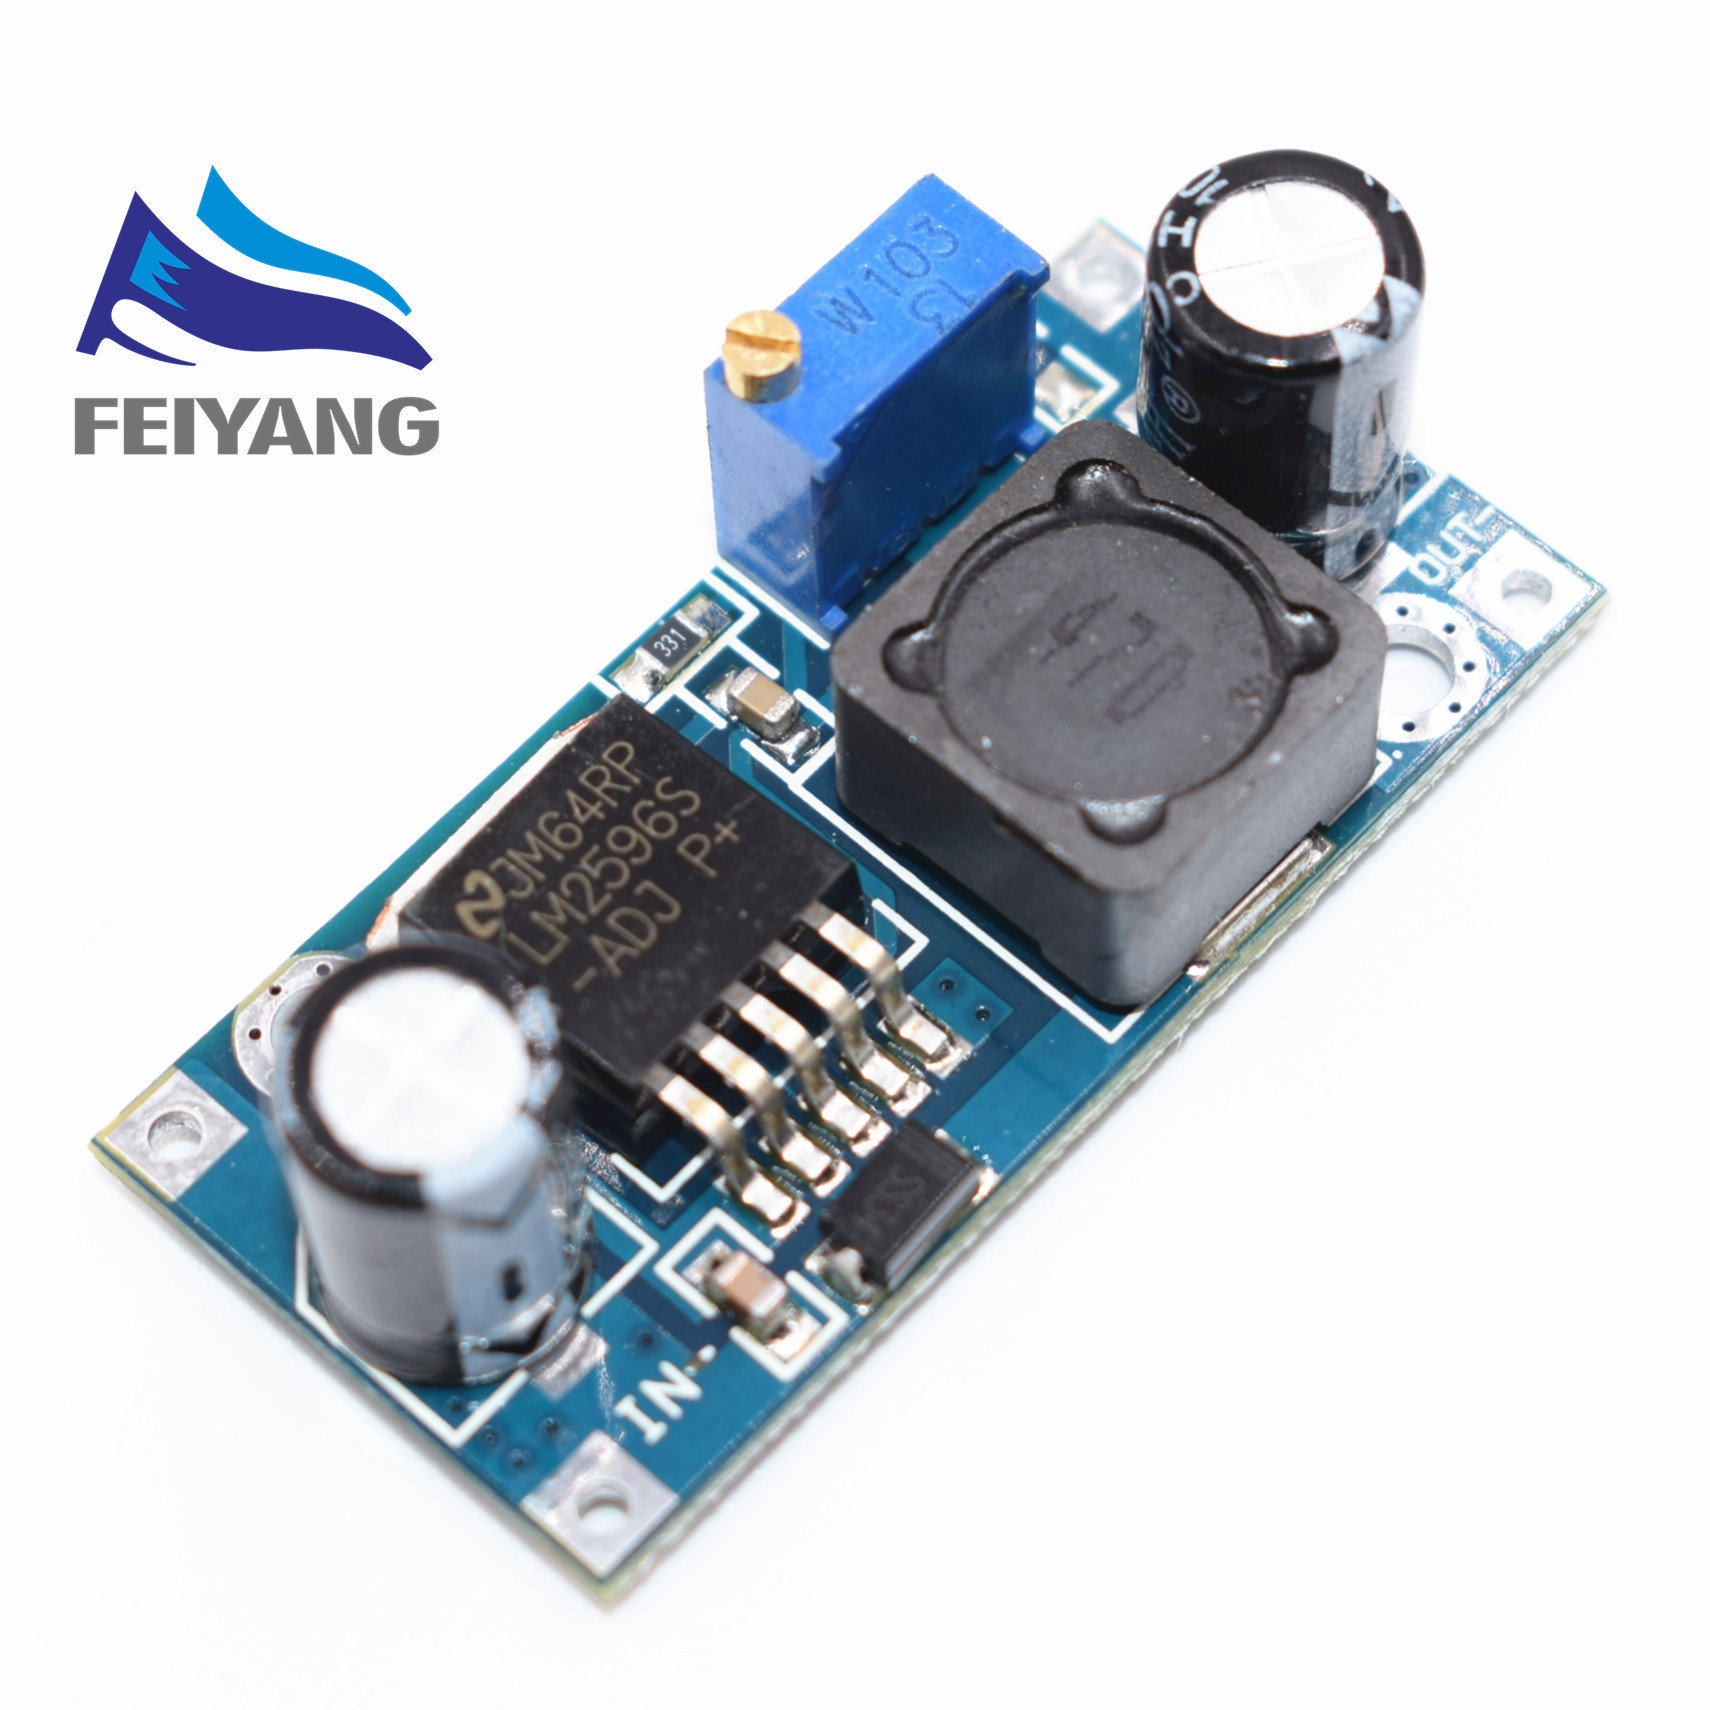 Aliexpress- 1 pcs LM2596 DC to DC Buck Converter Power Supply Step Down Module